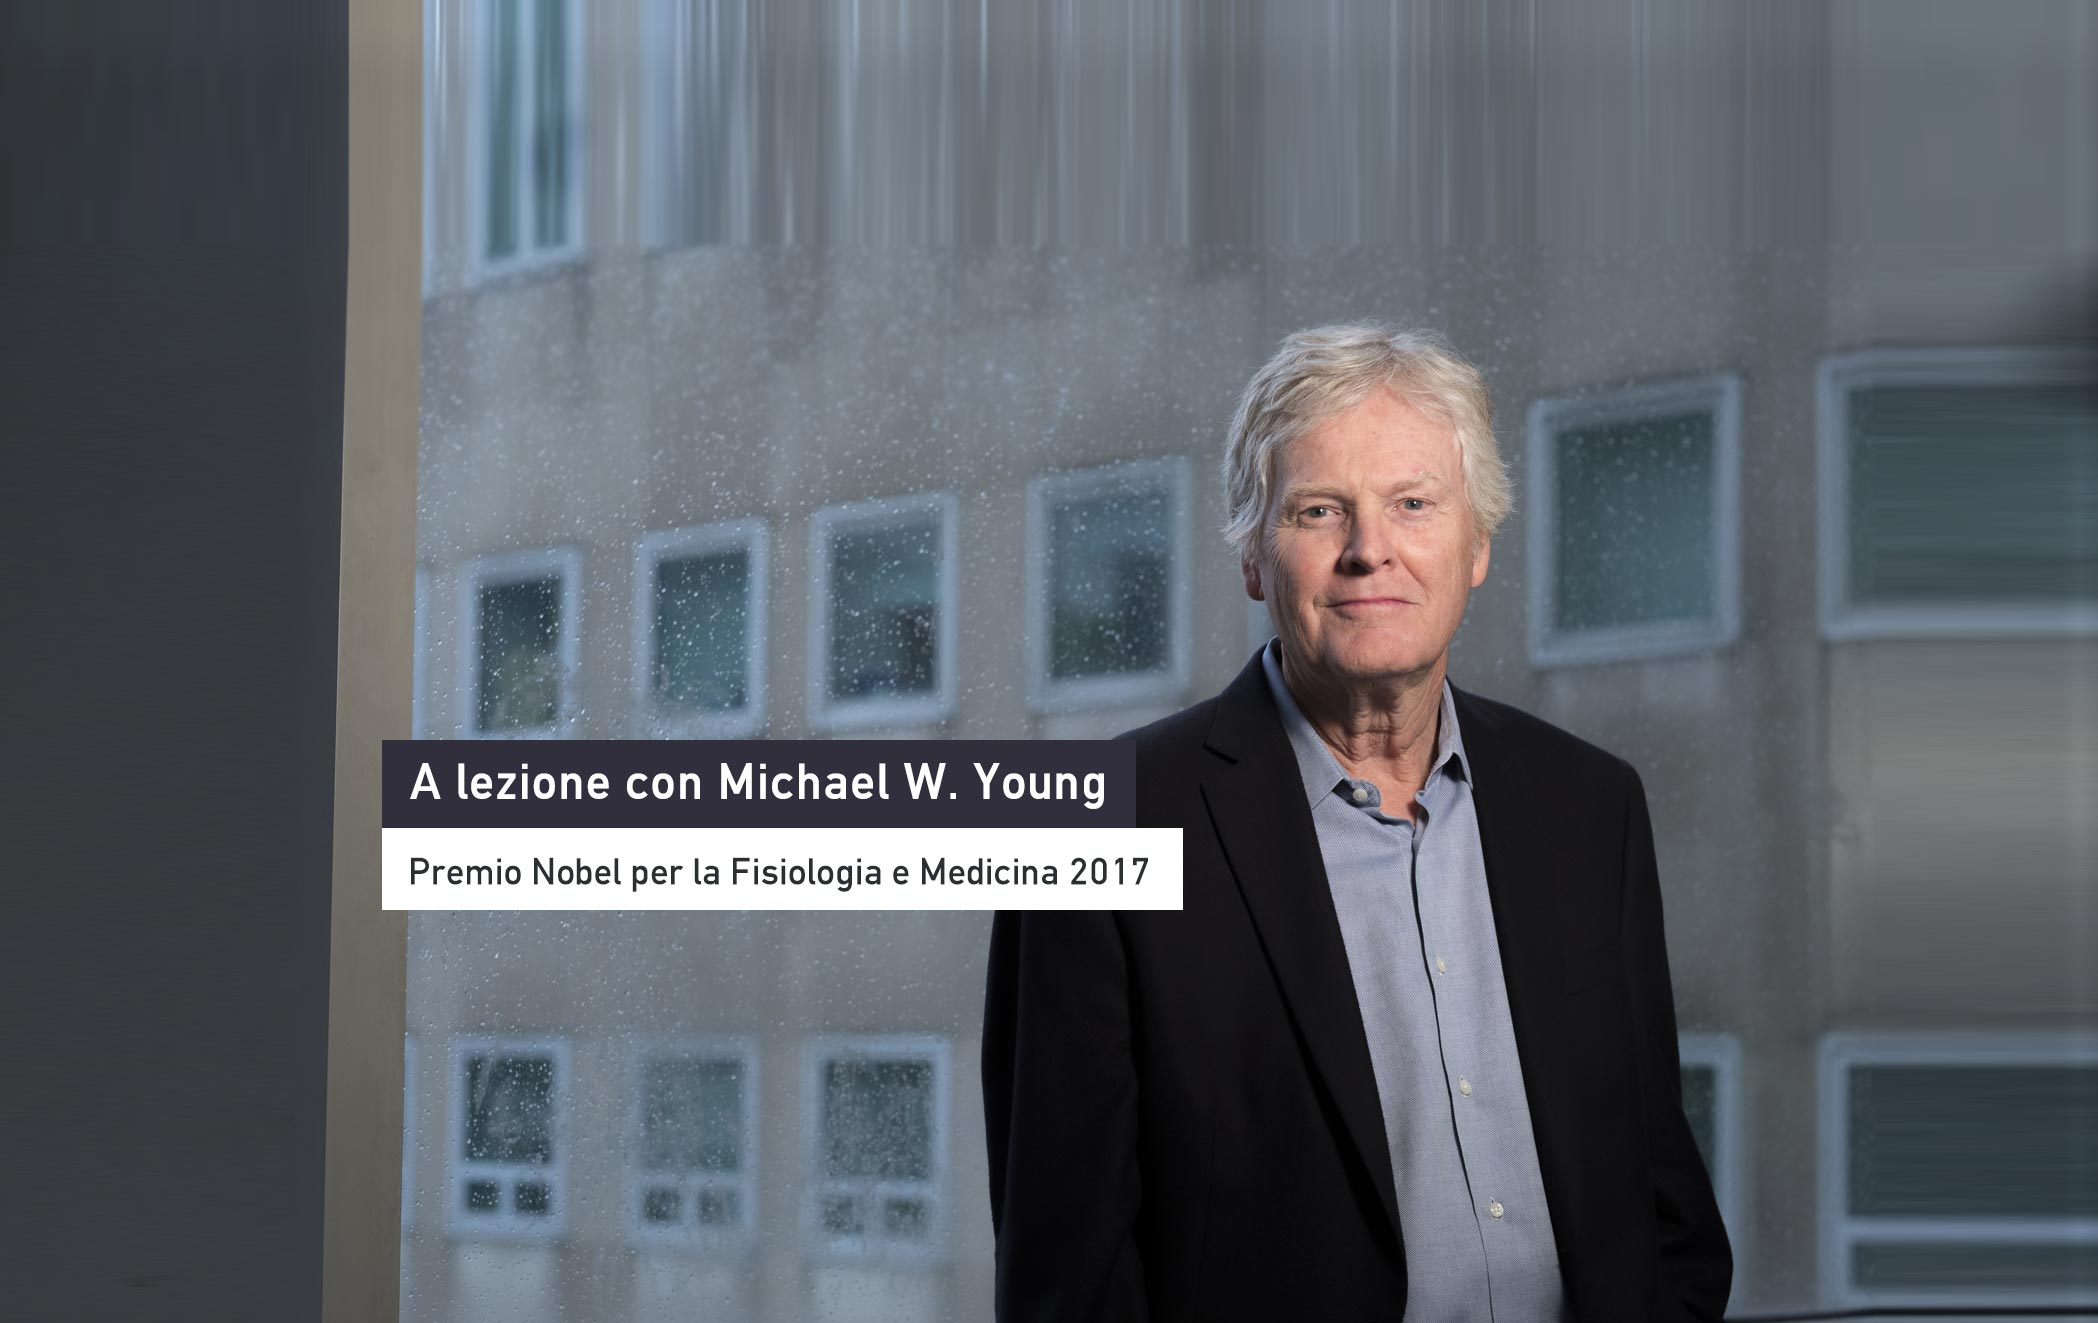 Michael W. Young